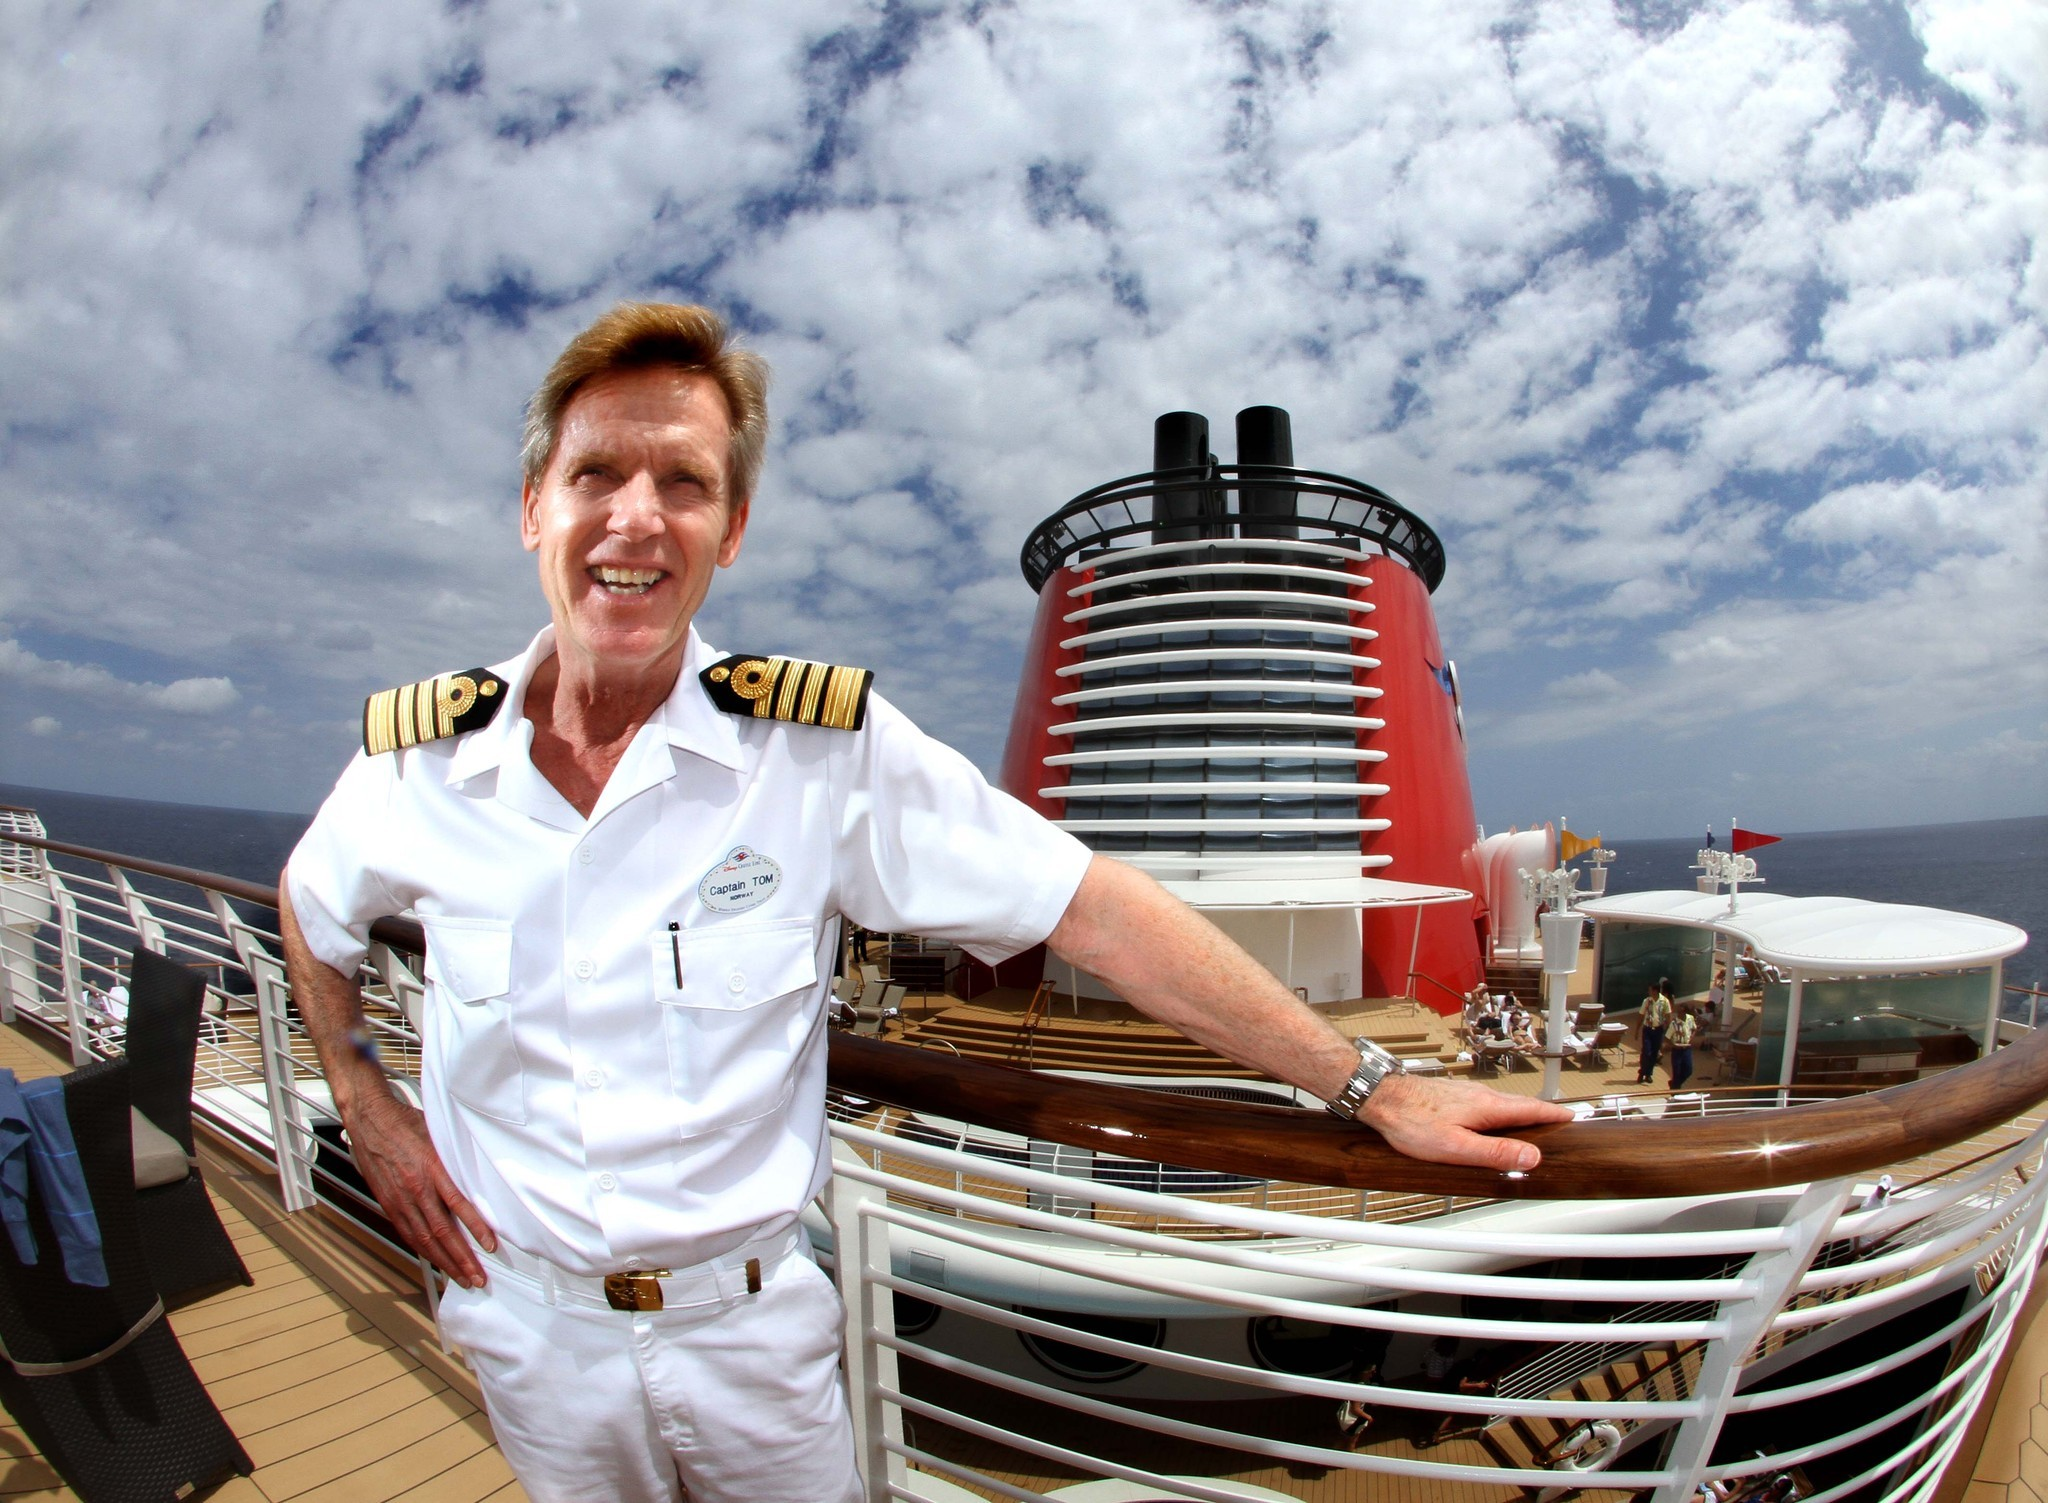 cruise ship jobs a crociere cruises - Cruise Ship Photographer